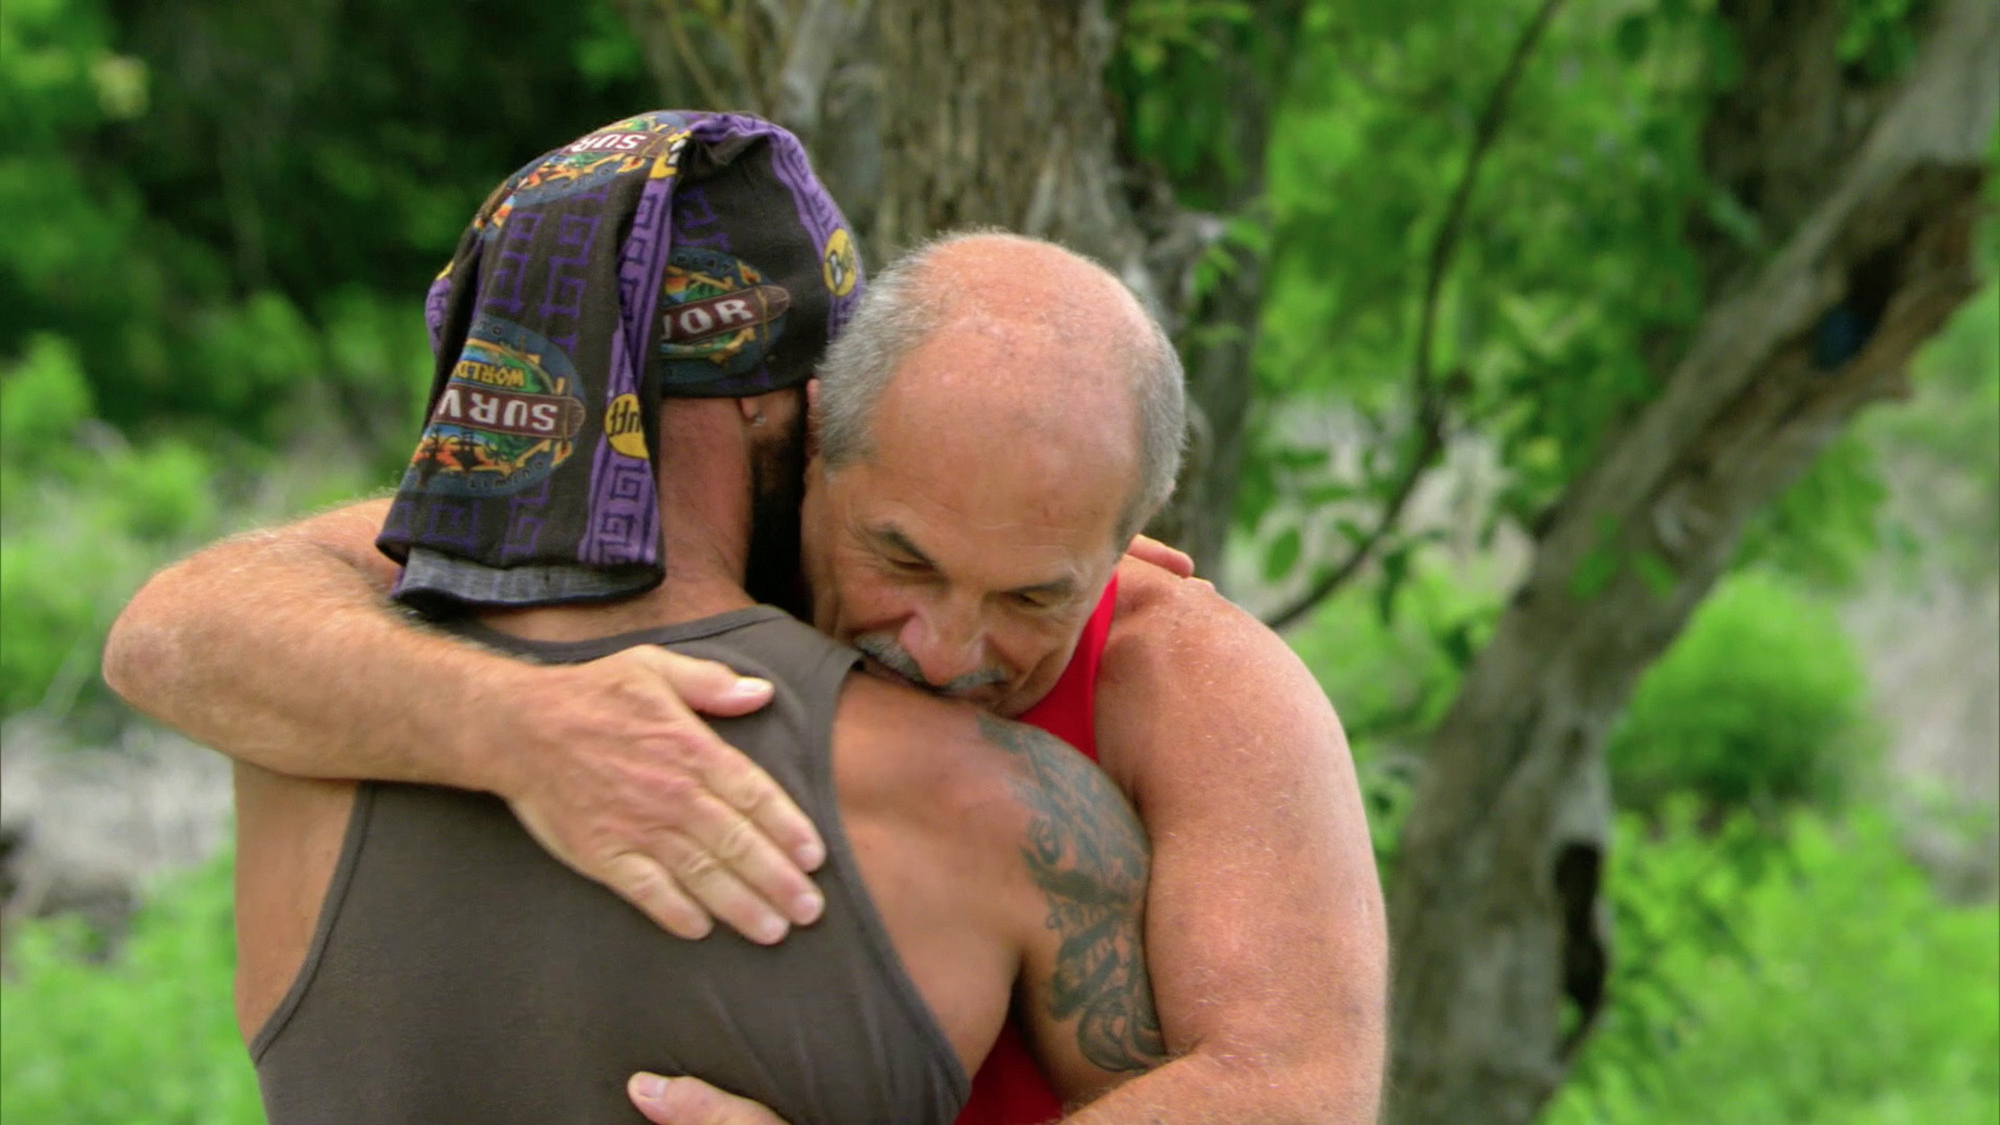 Rodney gives his father a wicked big hug